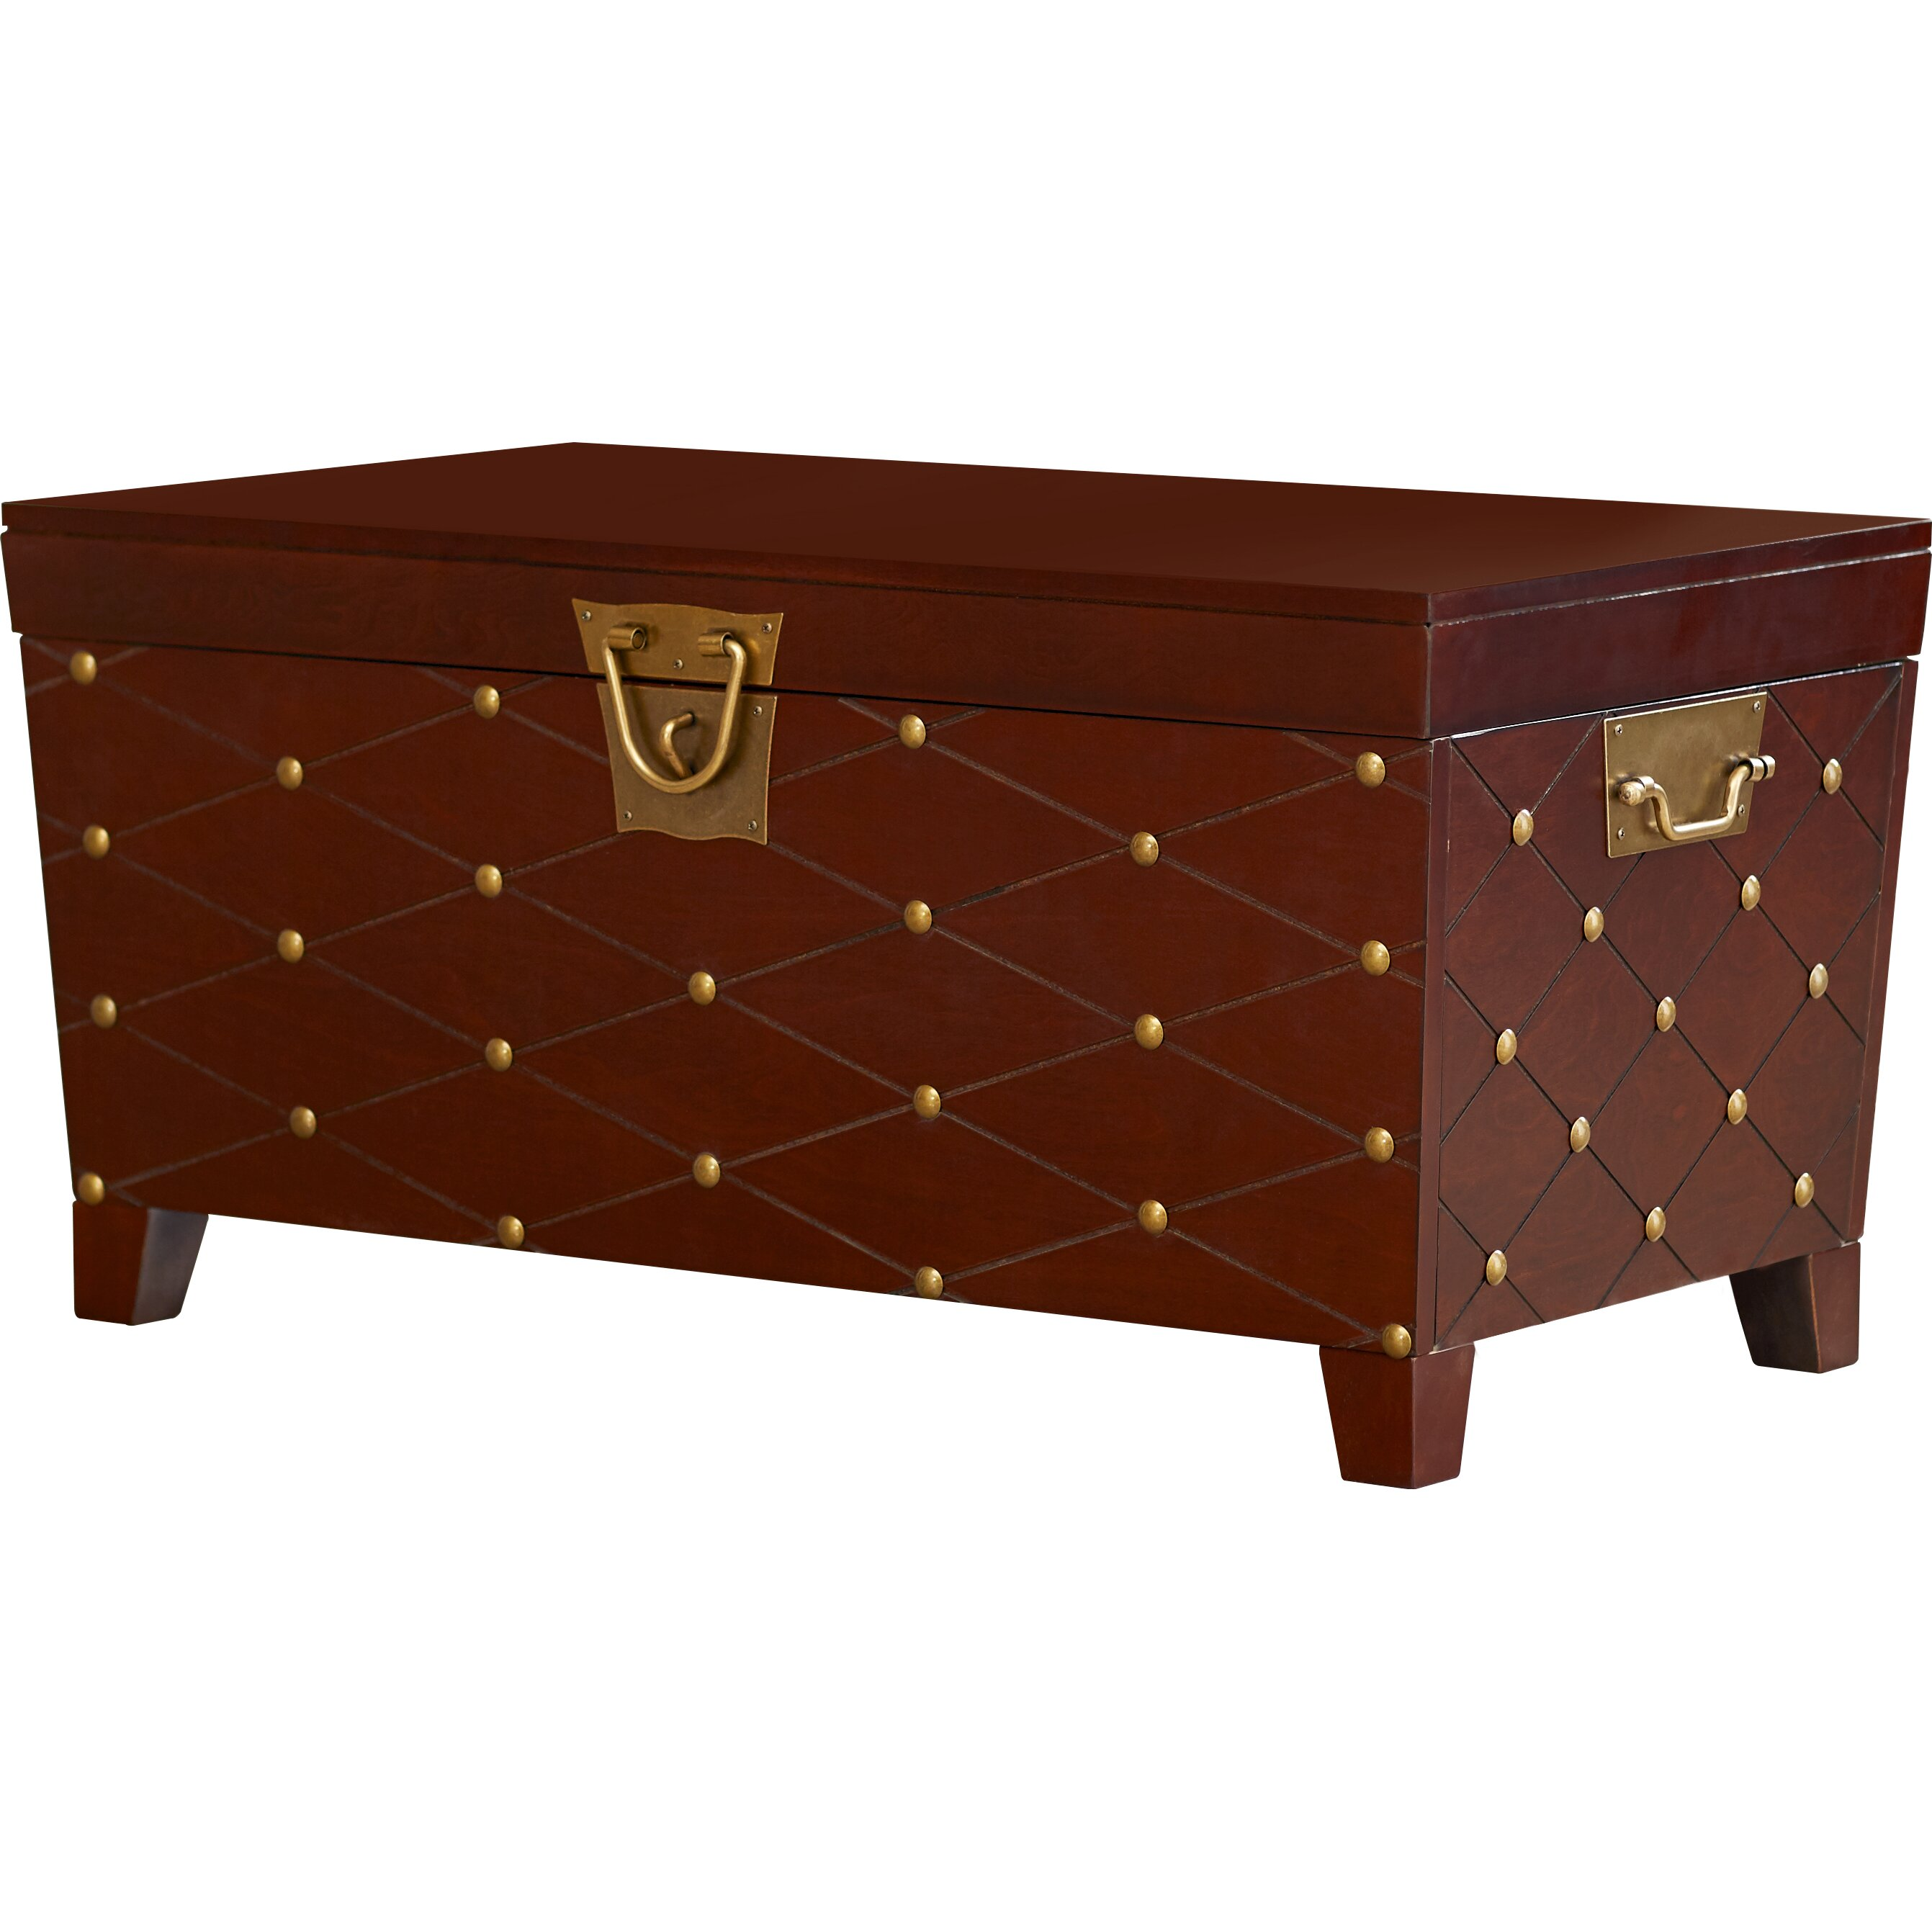 Astoria grand cainhoe nailhead trunk coffee table for Grande table